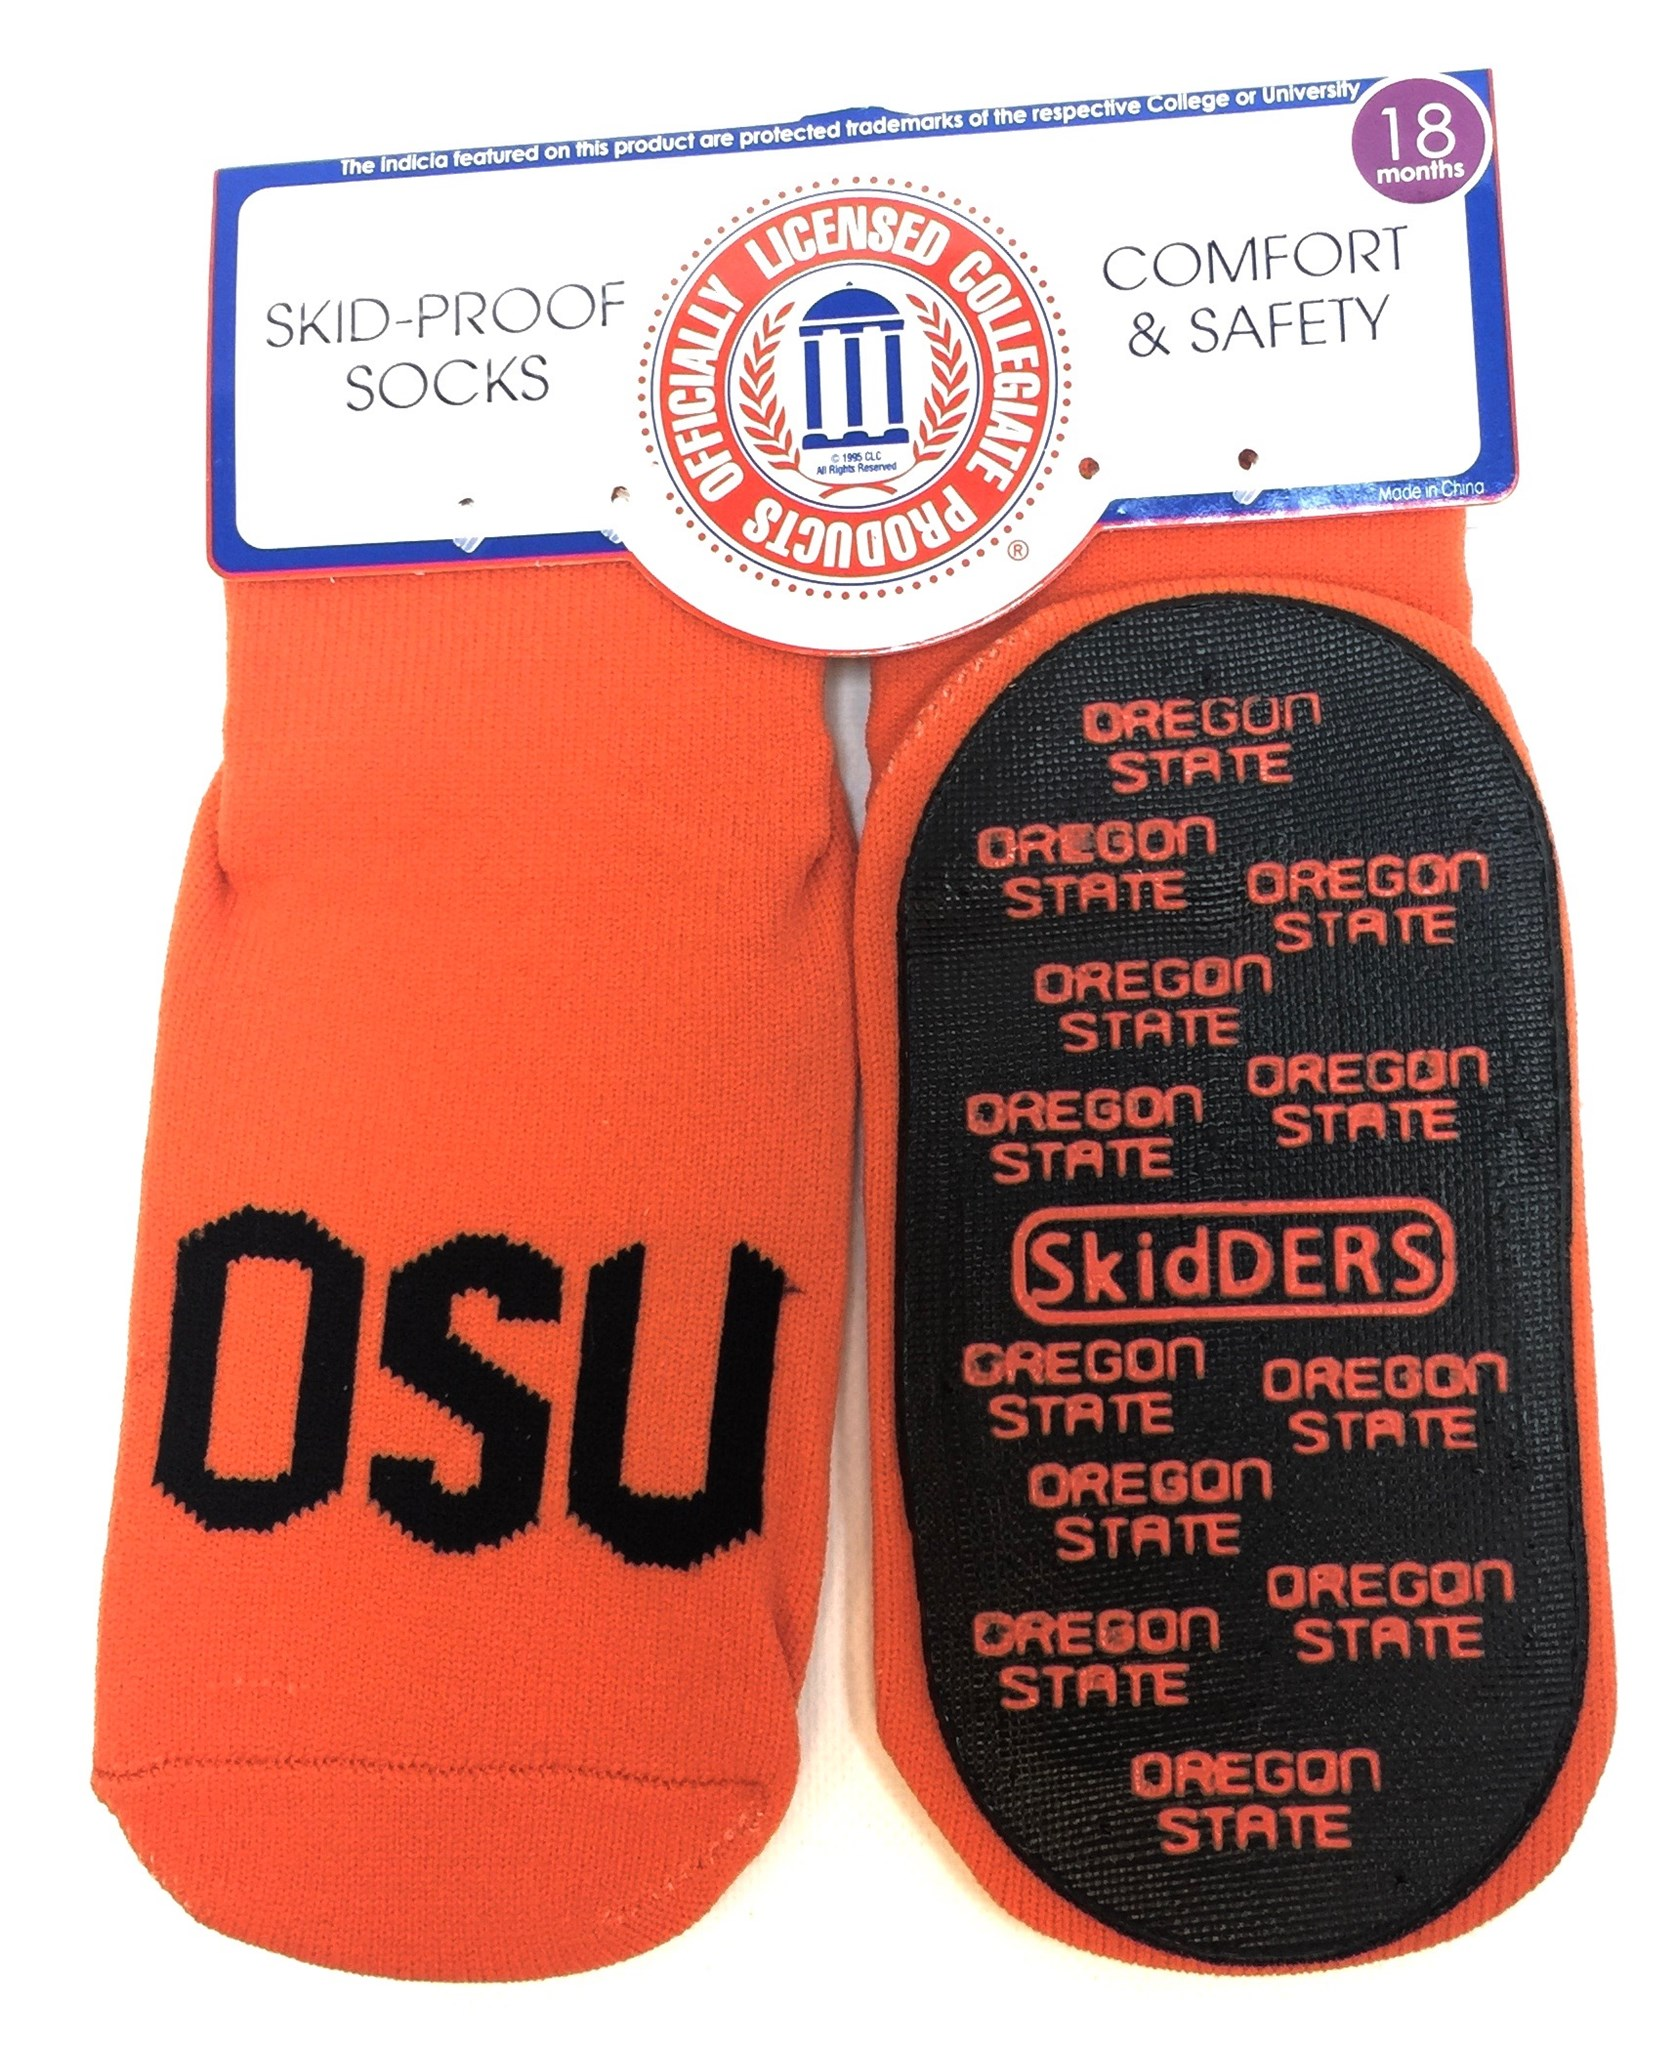 1 Pk Skid Proof Sock - Oregon State